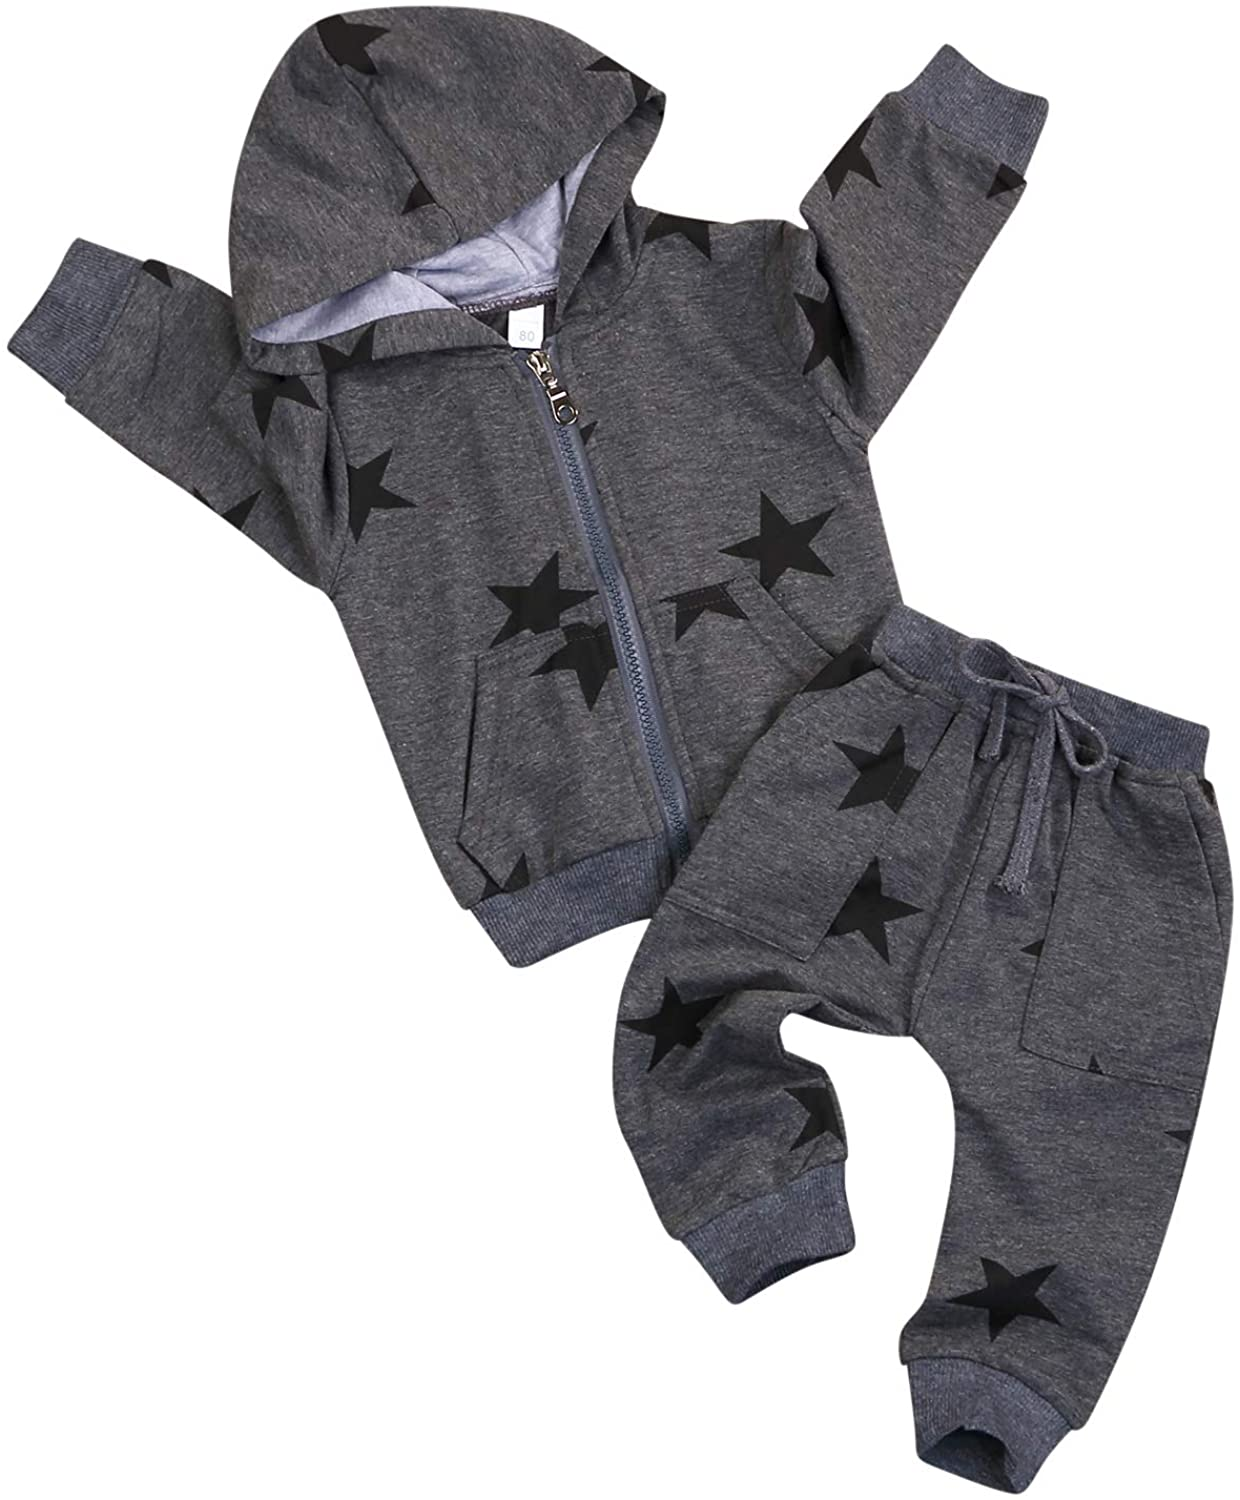 Toddler Kids Baby Boys Star Clothes Zipper Hoodie Sweatshirt Jacket and Pants with Pocket Winter Spring Sports Clothes Sets